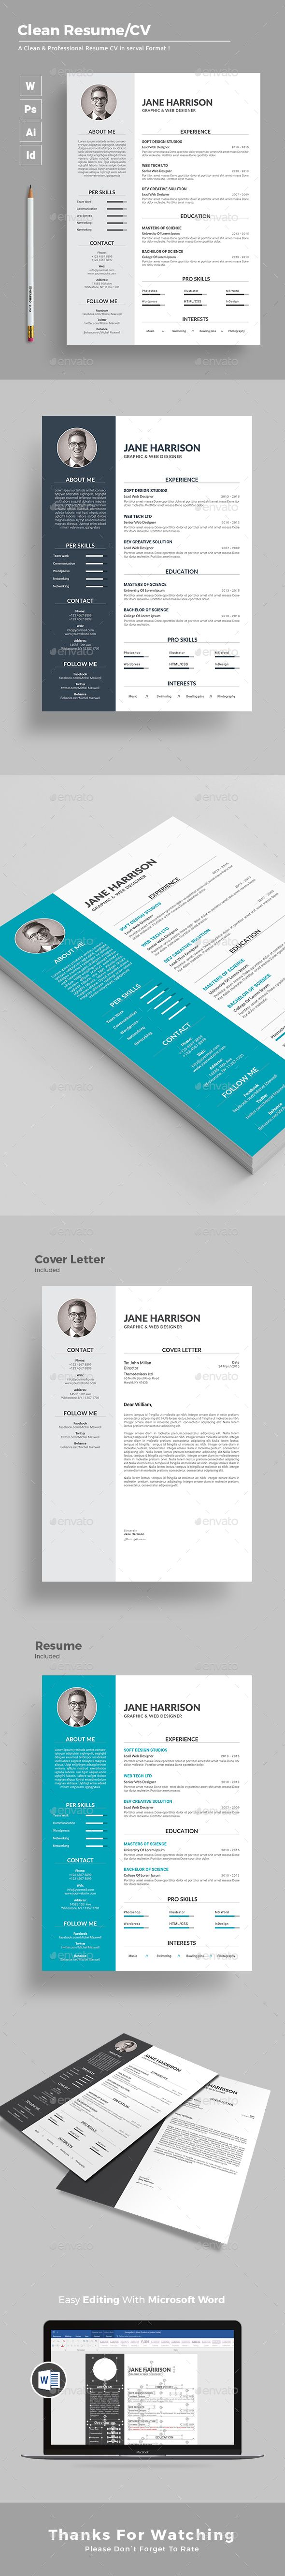 best ideas about resume templates resume resume resume resumes stationery here graphicriver net